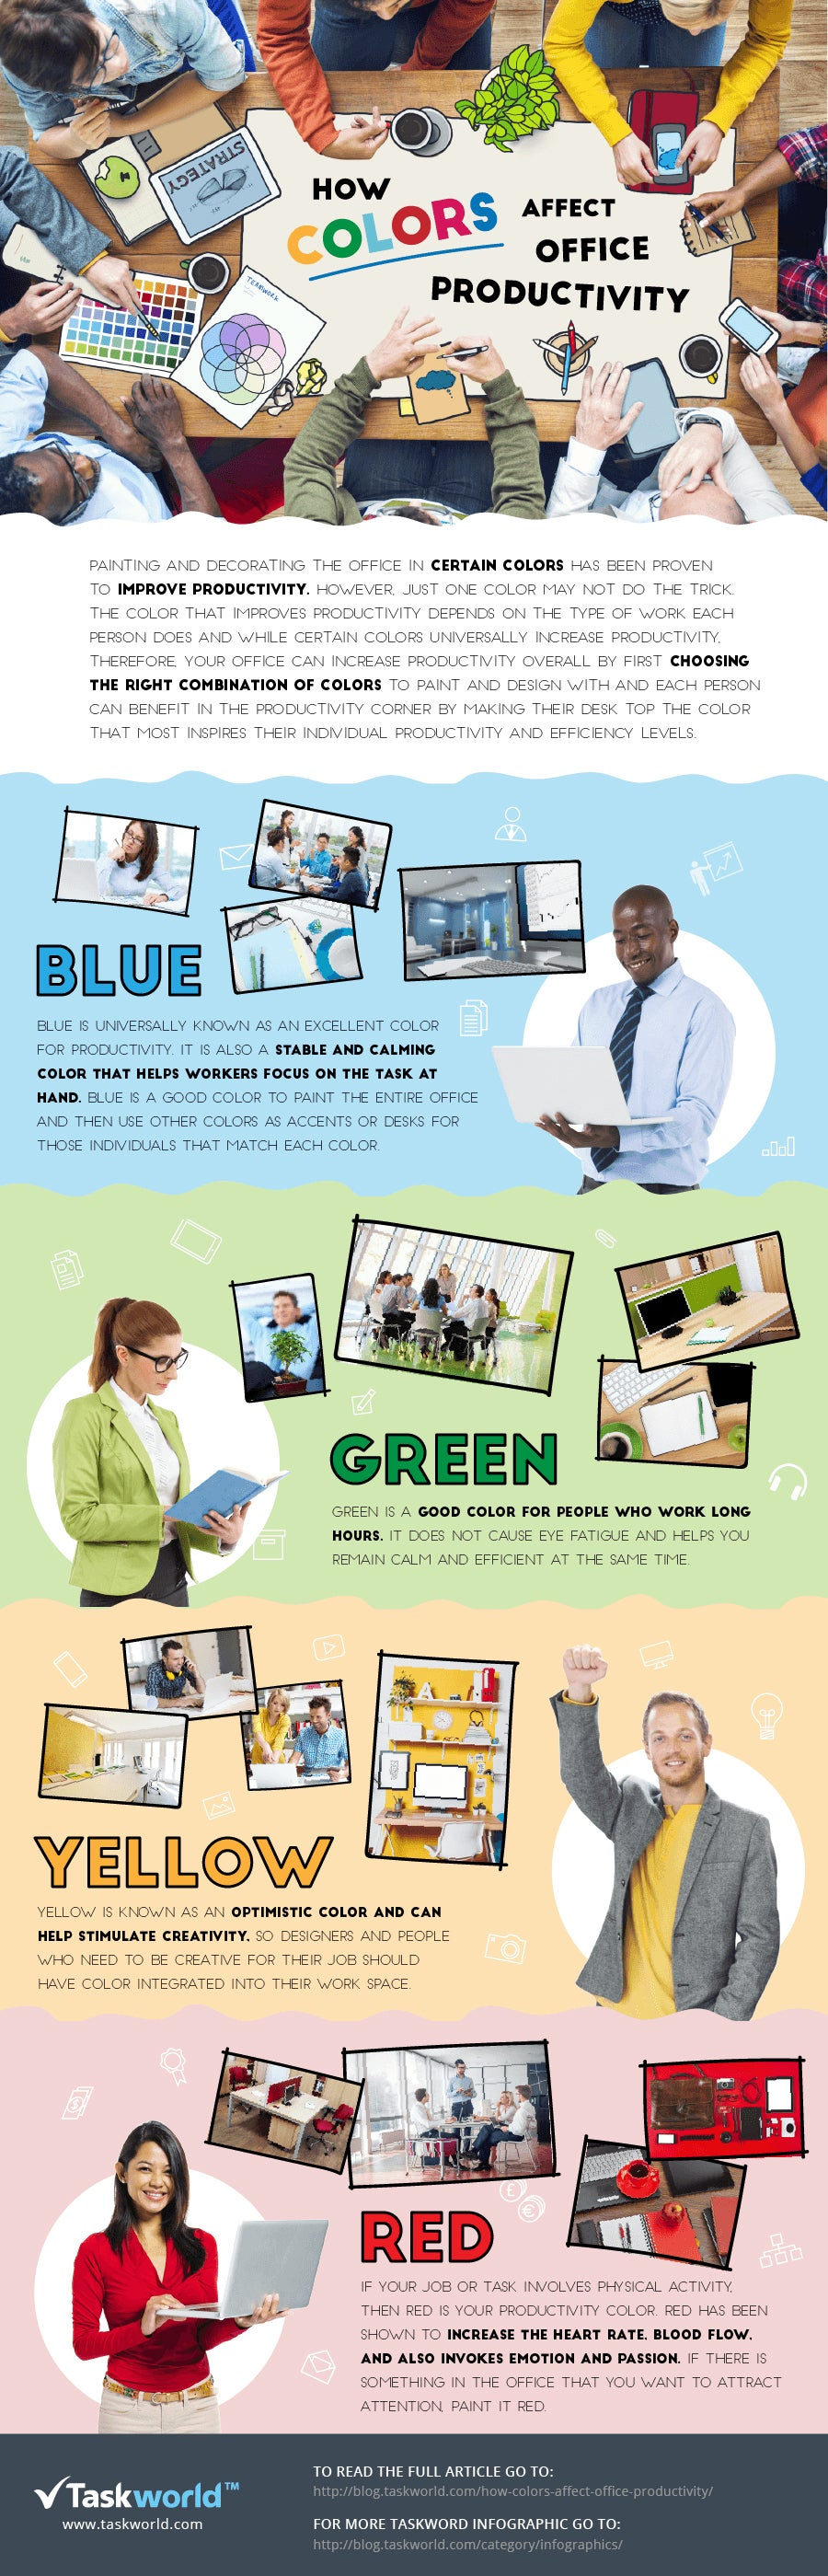 Colours And Their Moods the color of your office impacts productivity (infographic)